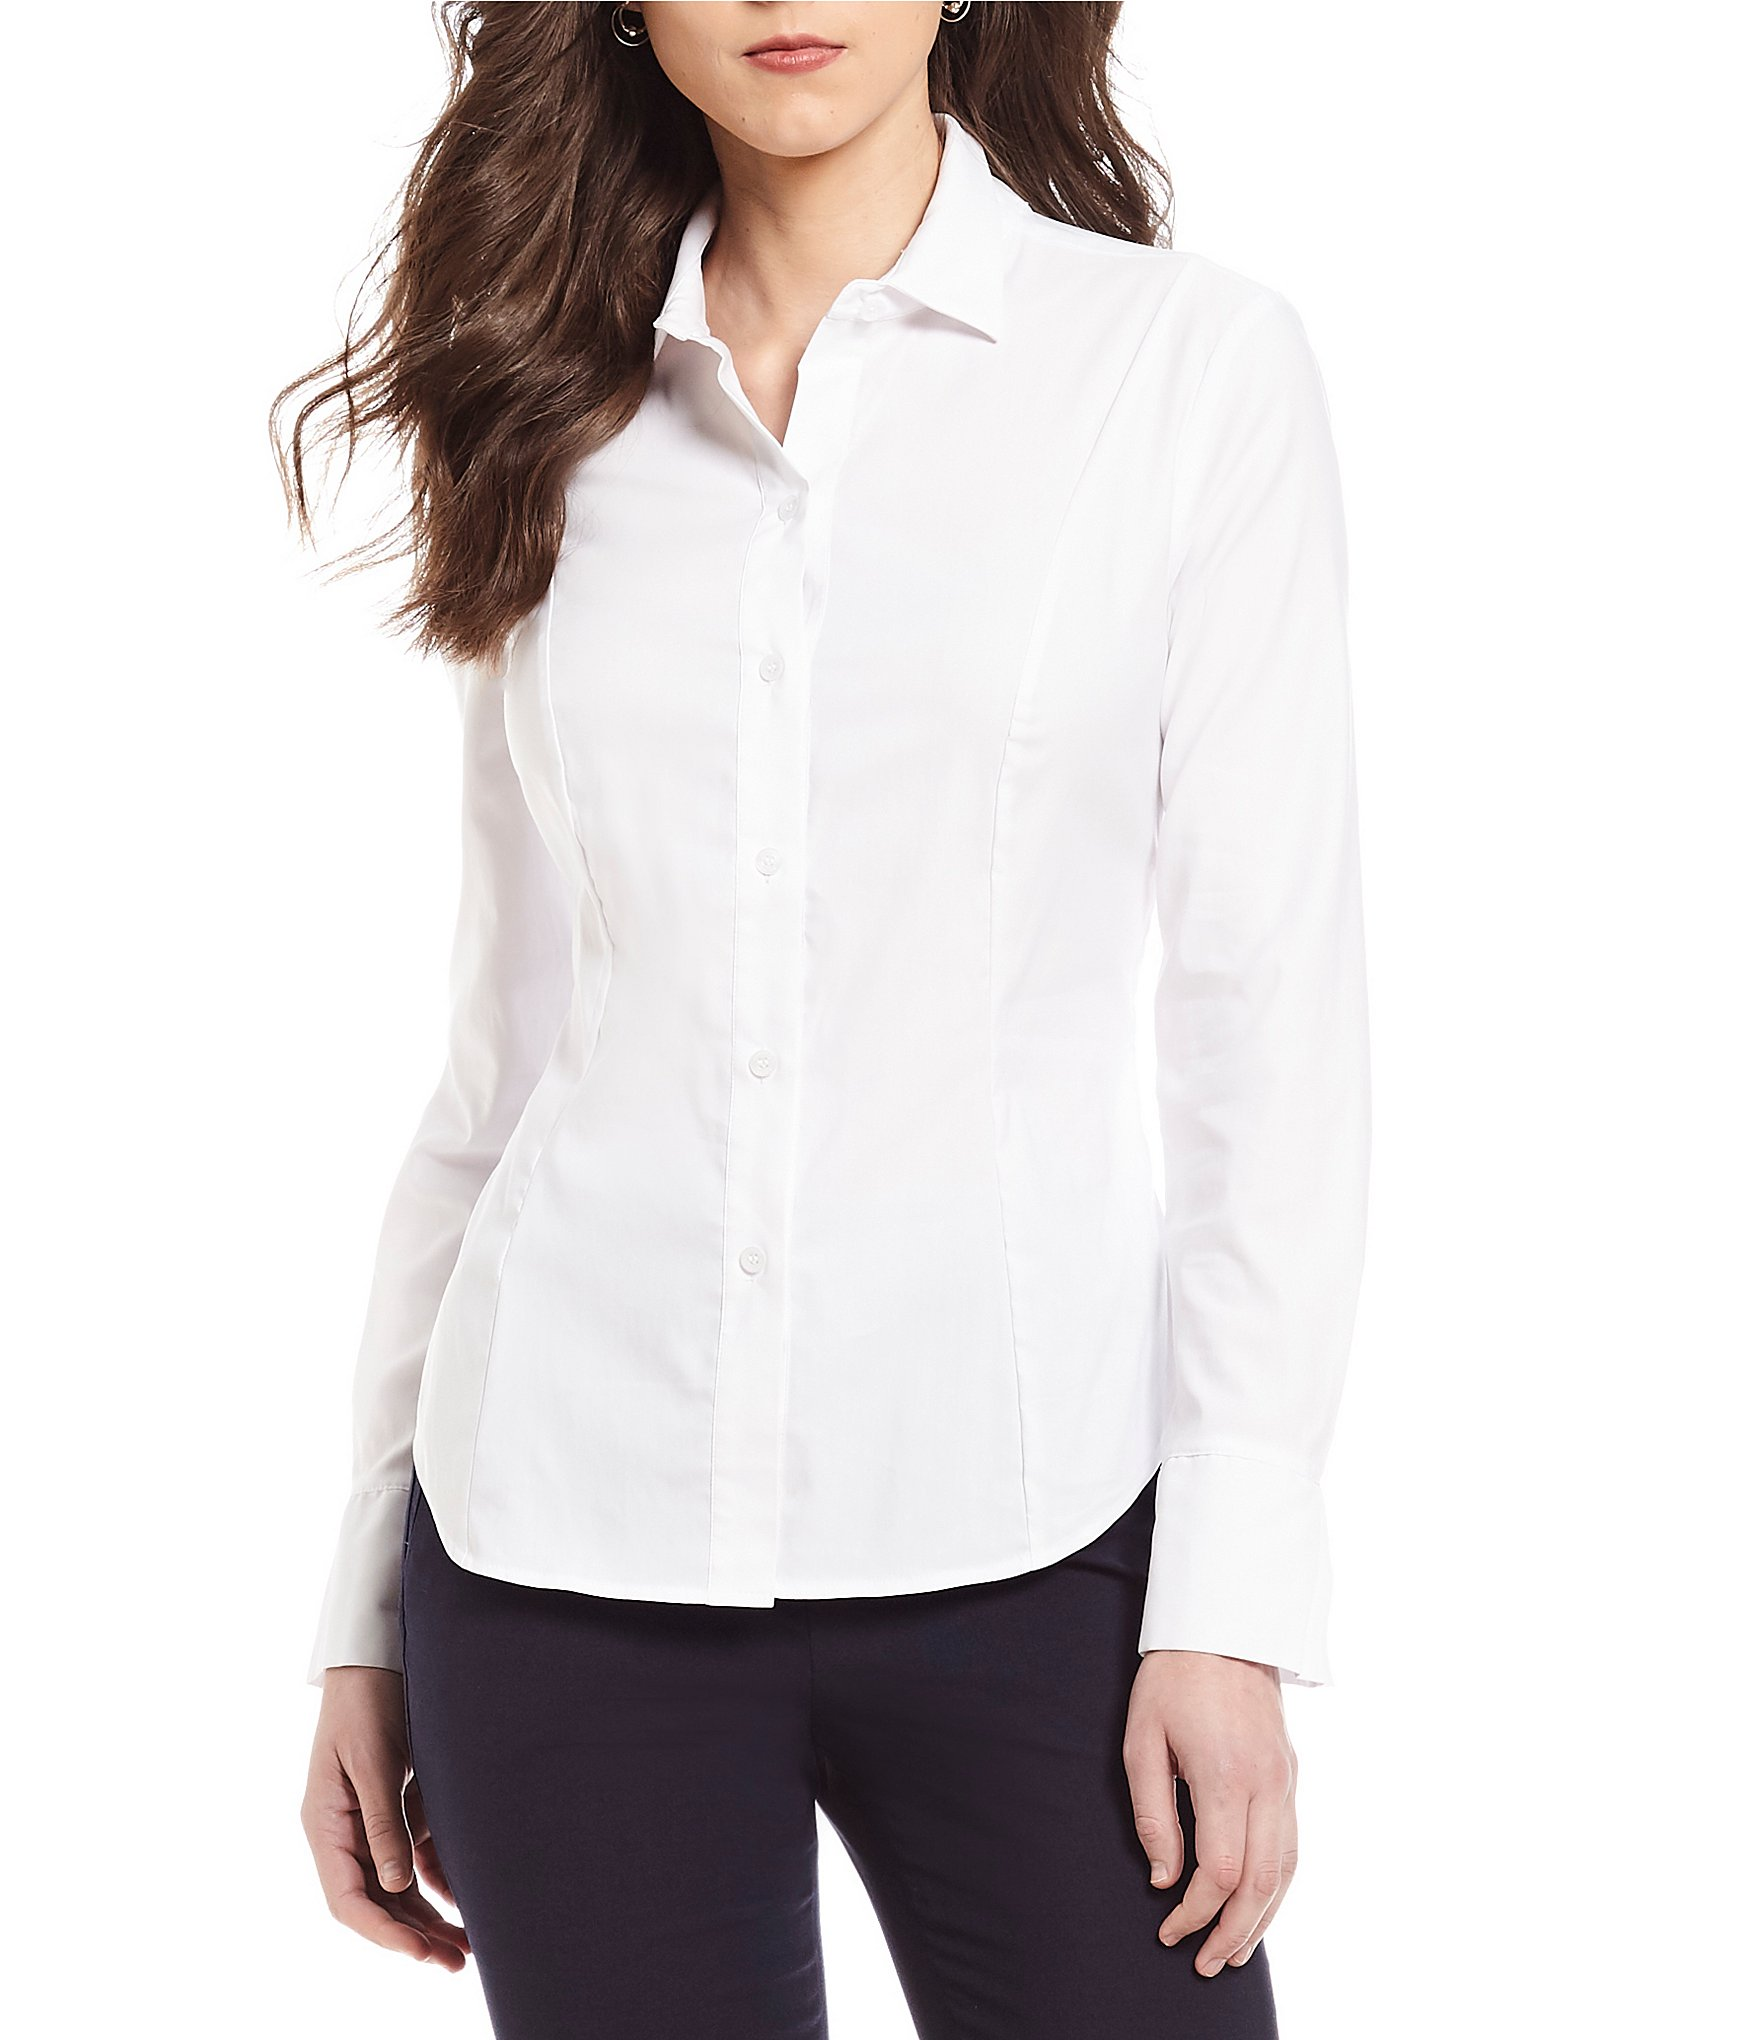 Juniors White Blouse